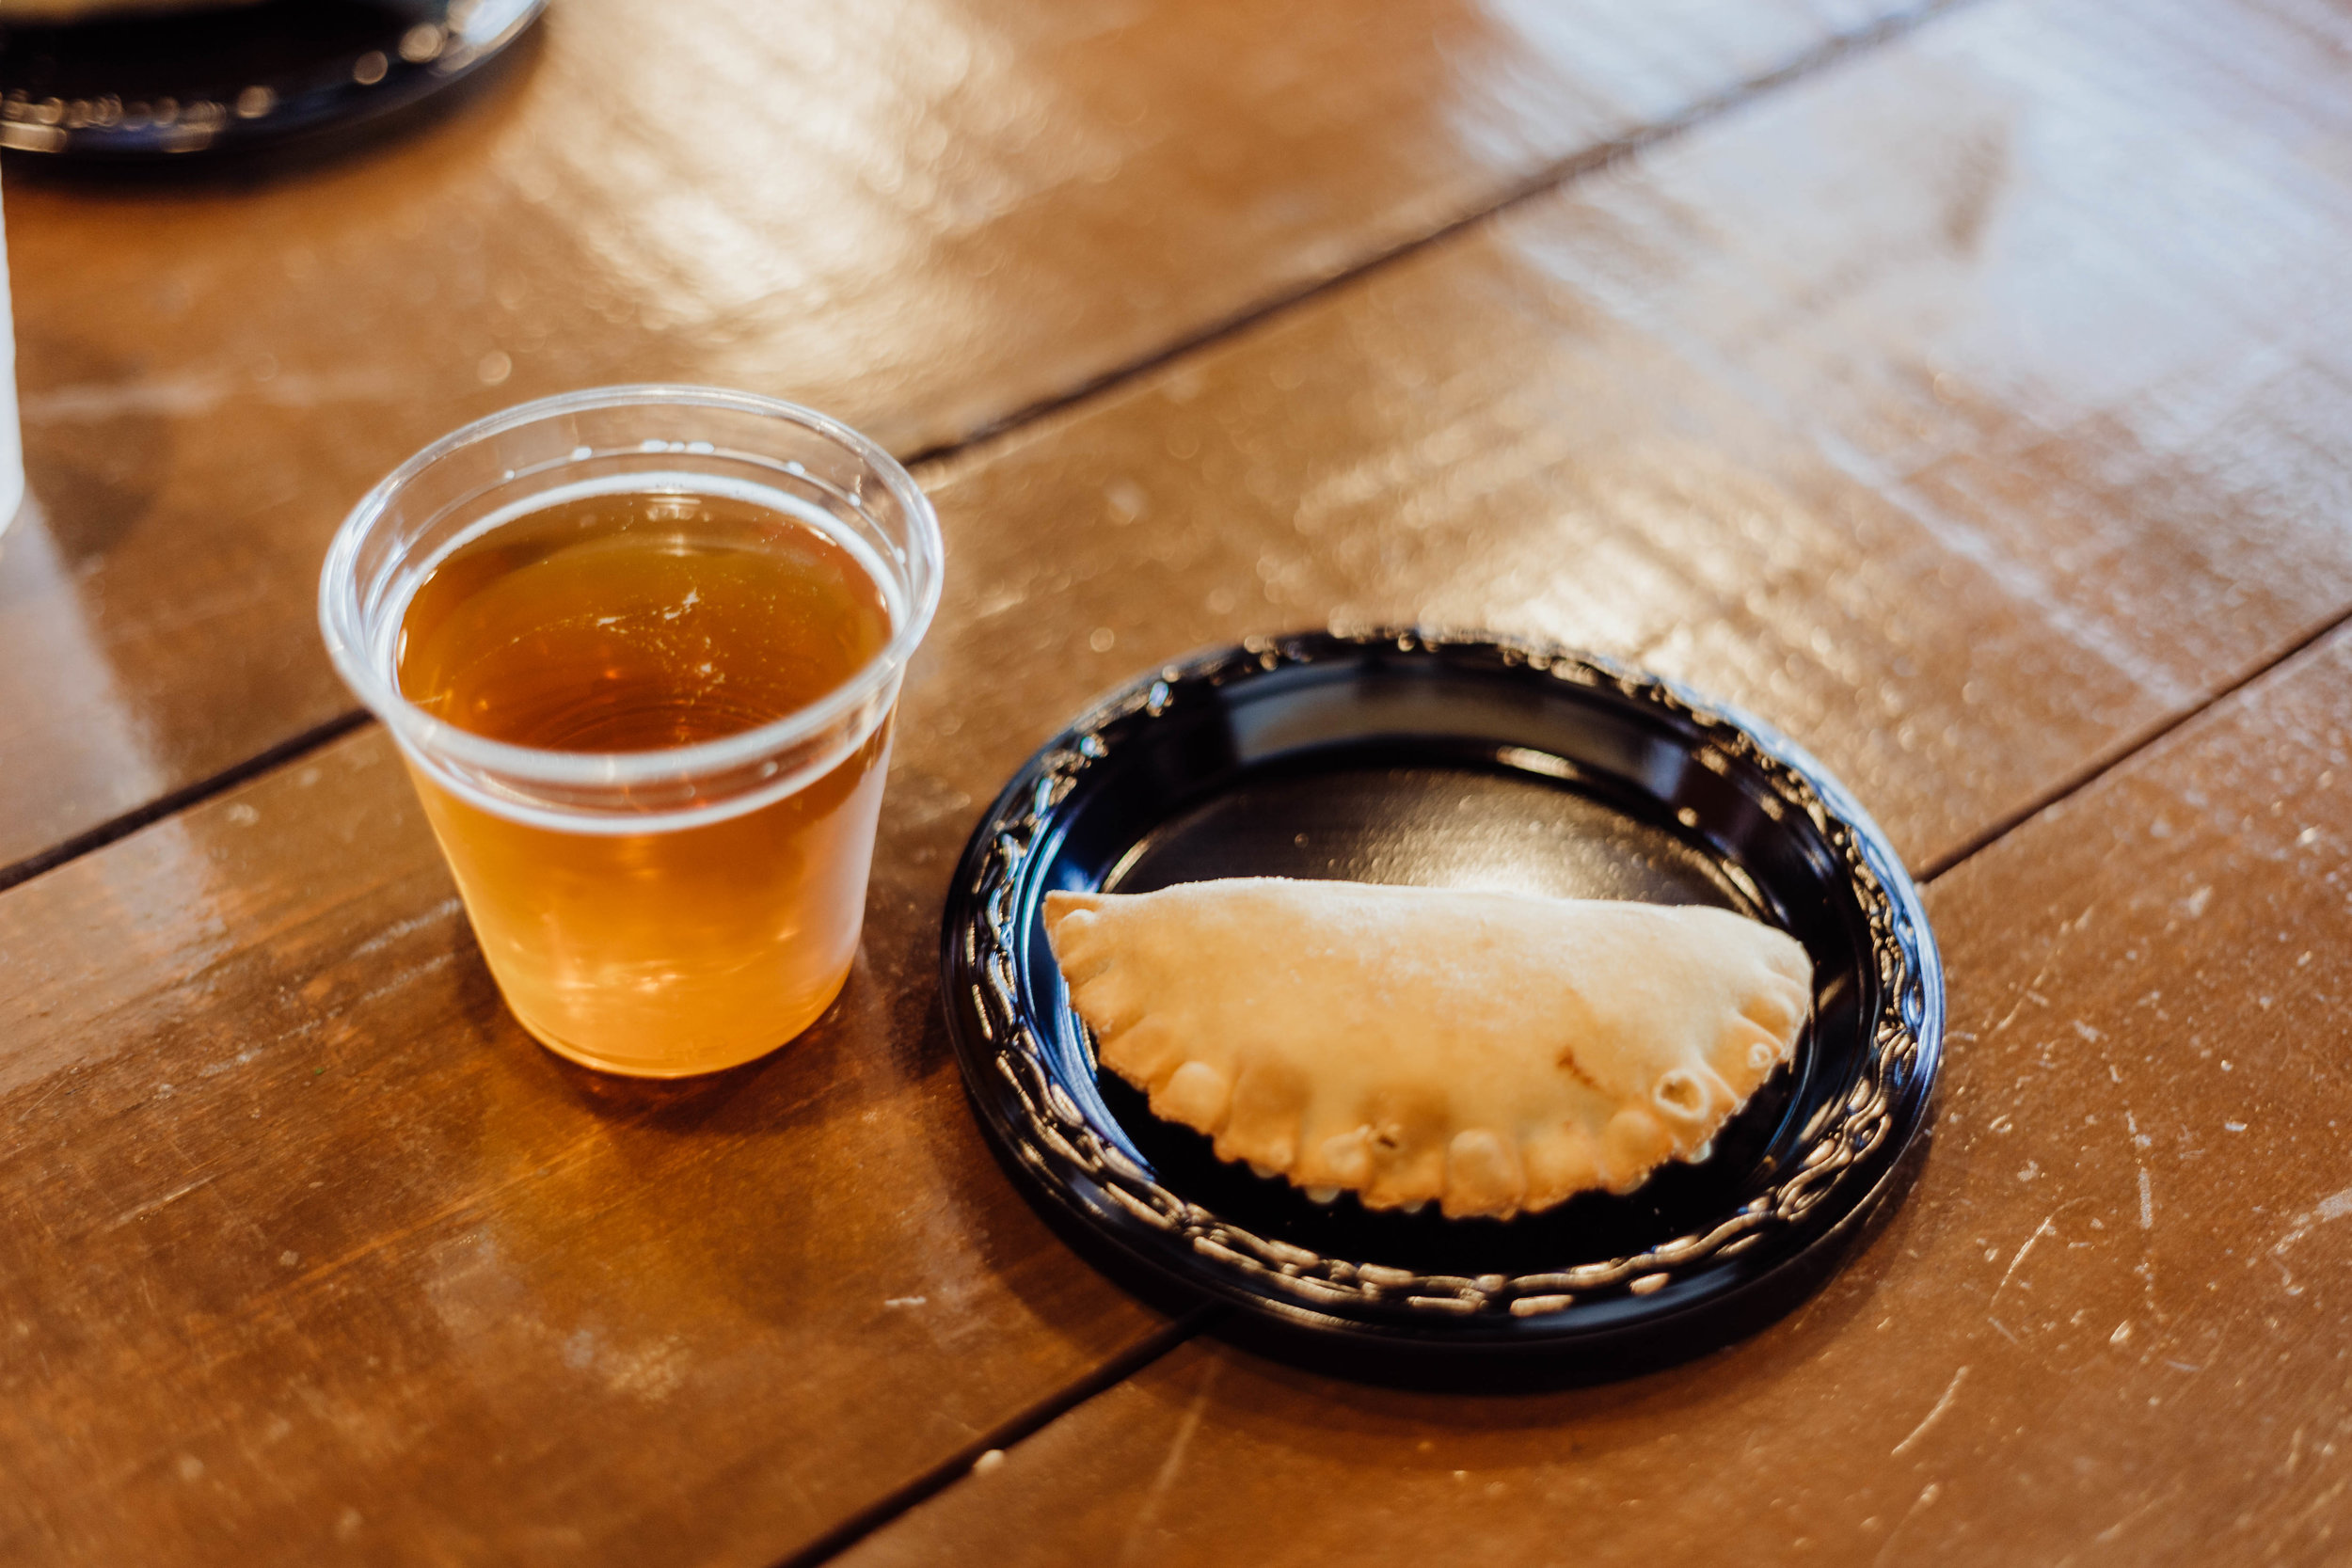 The fourth course, featuring a Sausage, Onion and Potato Empanada with Smoked Habanero Cheese and the Greenbelt Farmhouse Ale. Photo by Jennifer Meza.